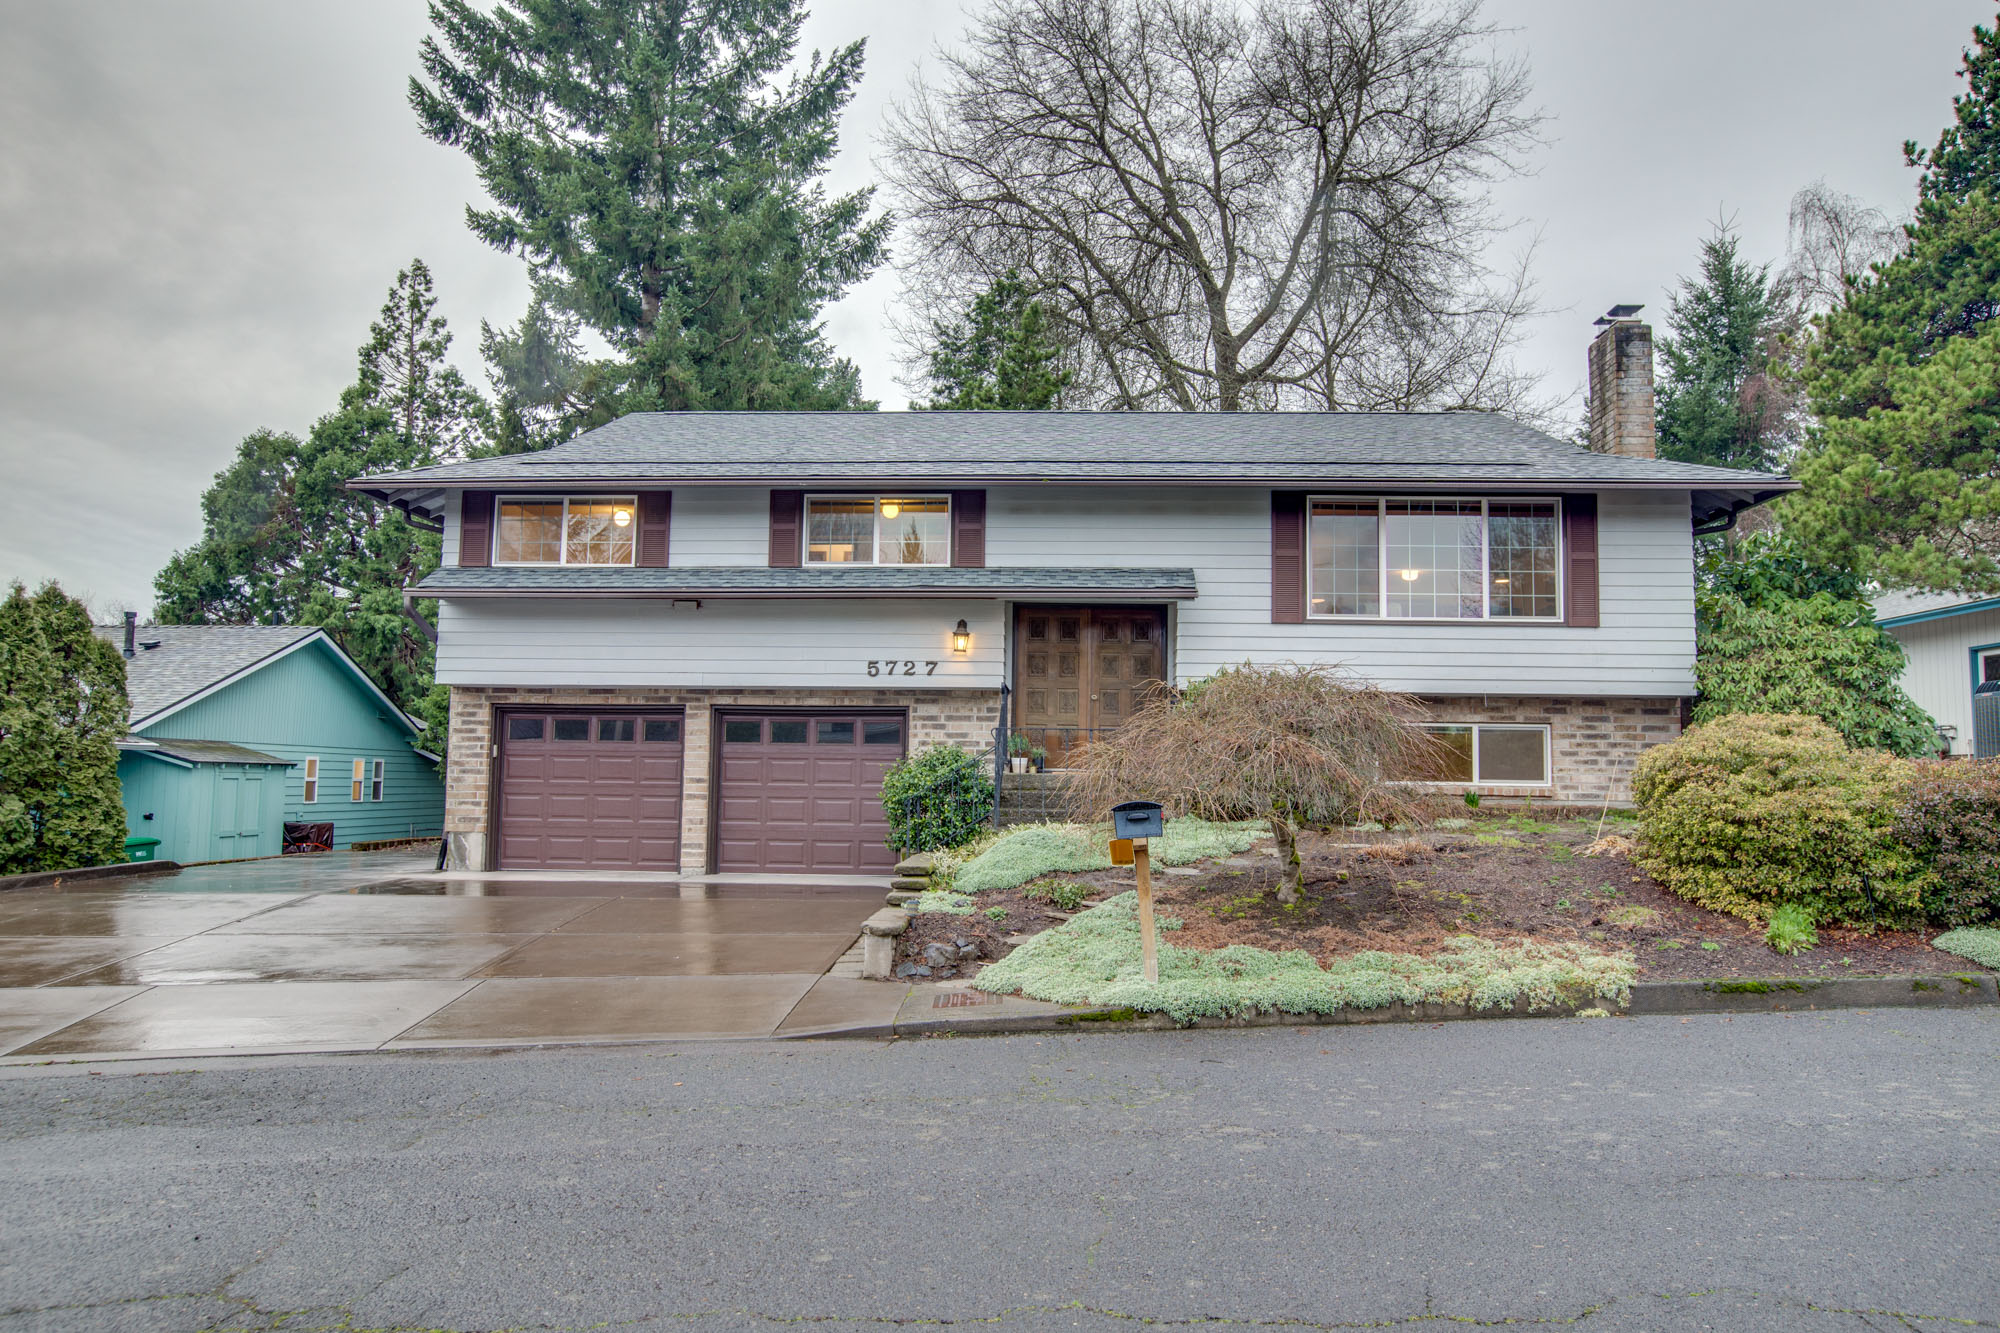 Just listed happy in hayhurst living room realty portland real estate for Living room realty portland or